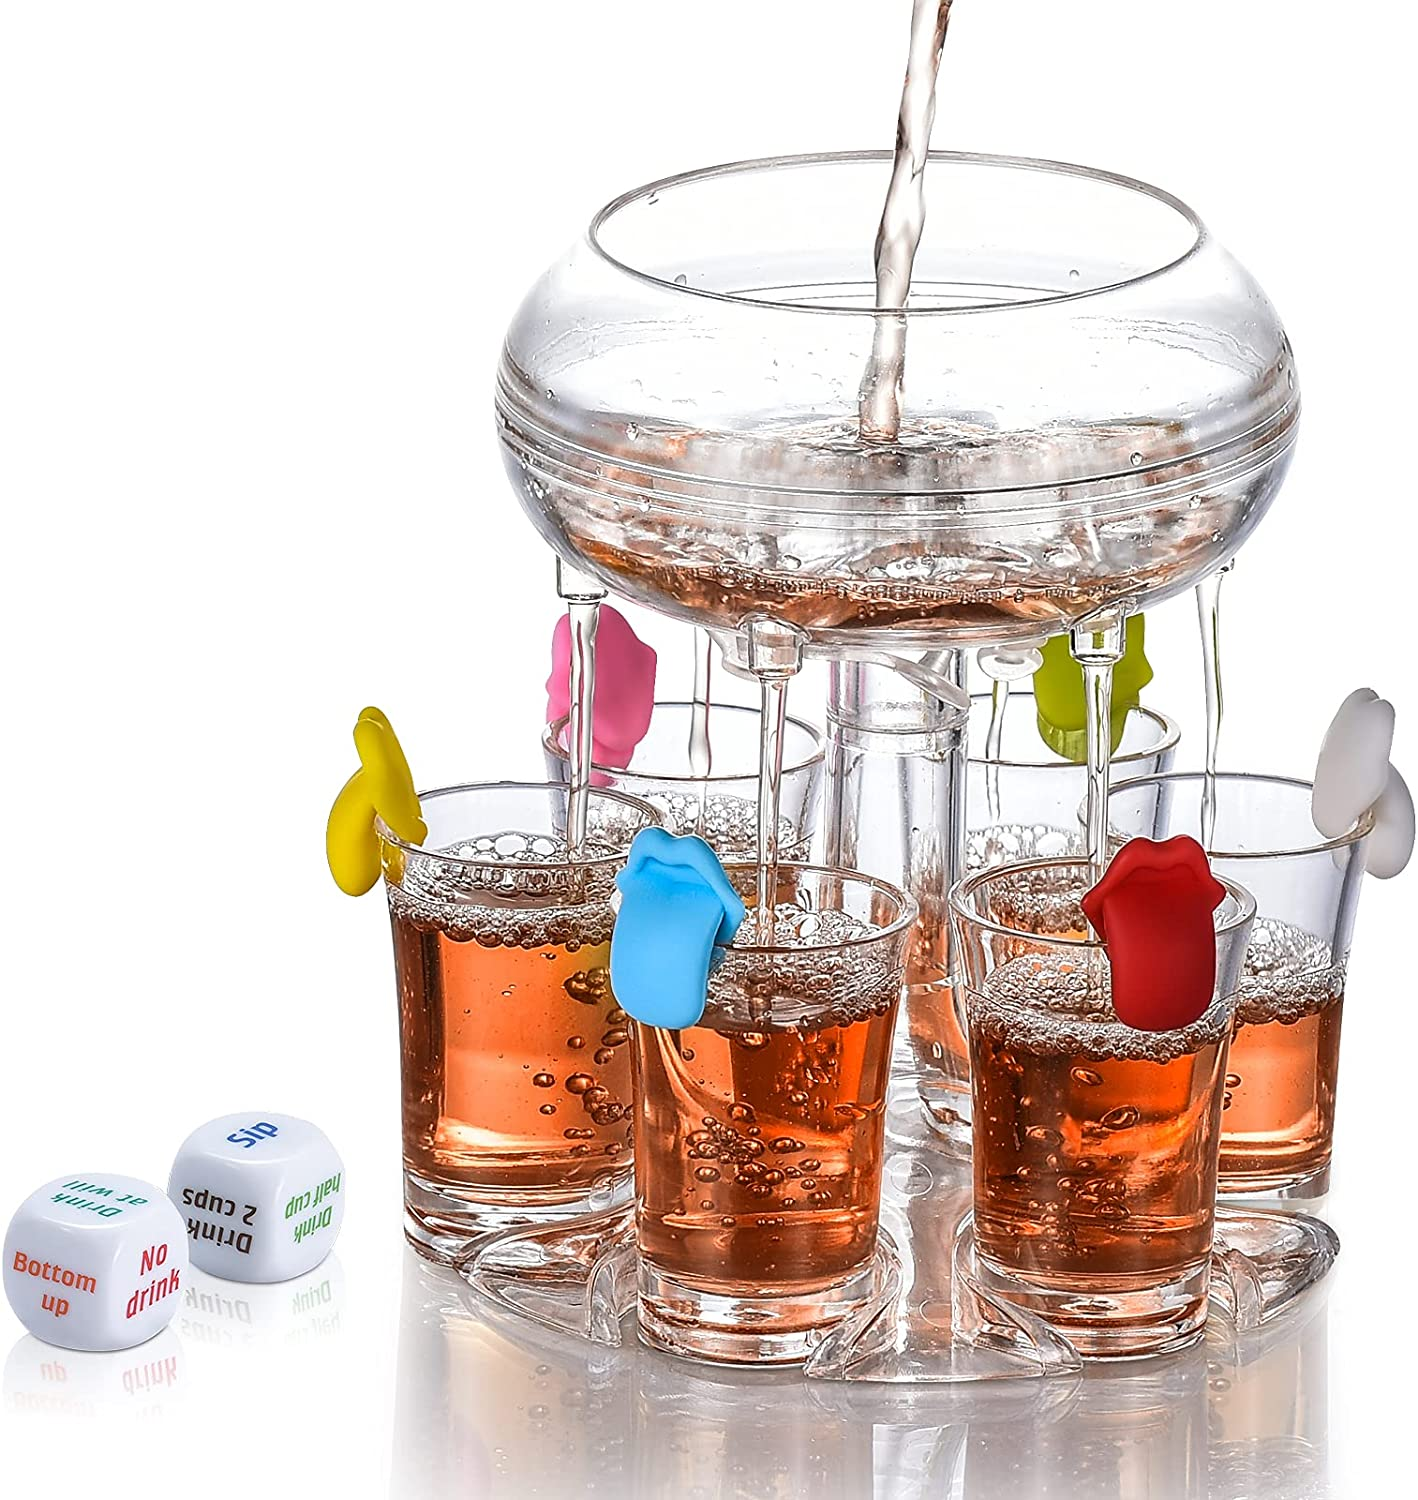 6 Shot Acrylic Dispenser and Holder,with Cup Markers and Game Dice,Shots Dispenser For Filling Liquids,Alcohol Liquor Beverage Dispenser,Party Bar,Cocktail Dispenser, Drinking Tools